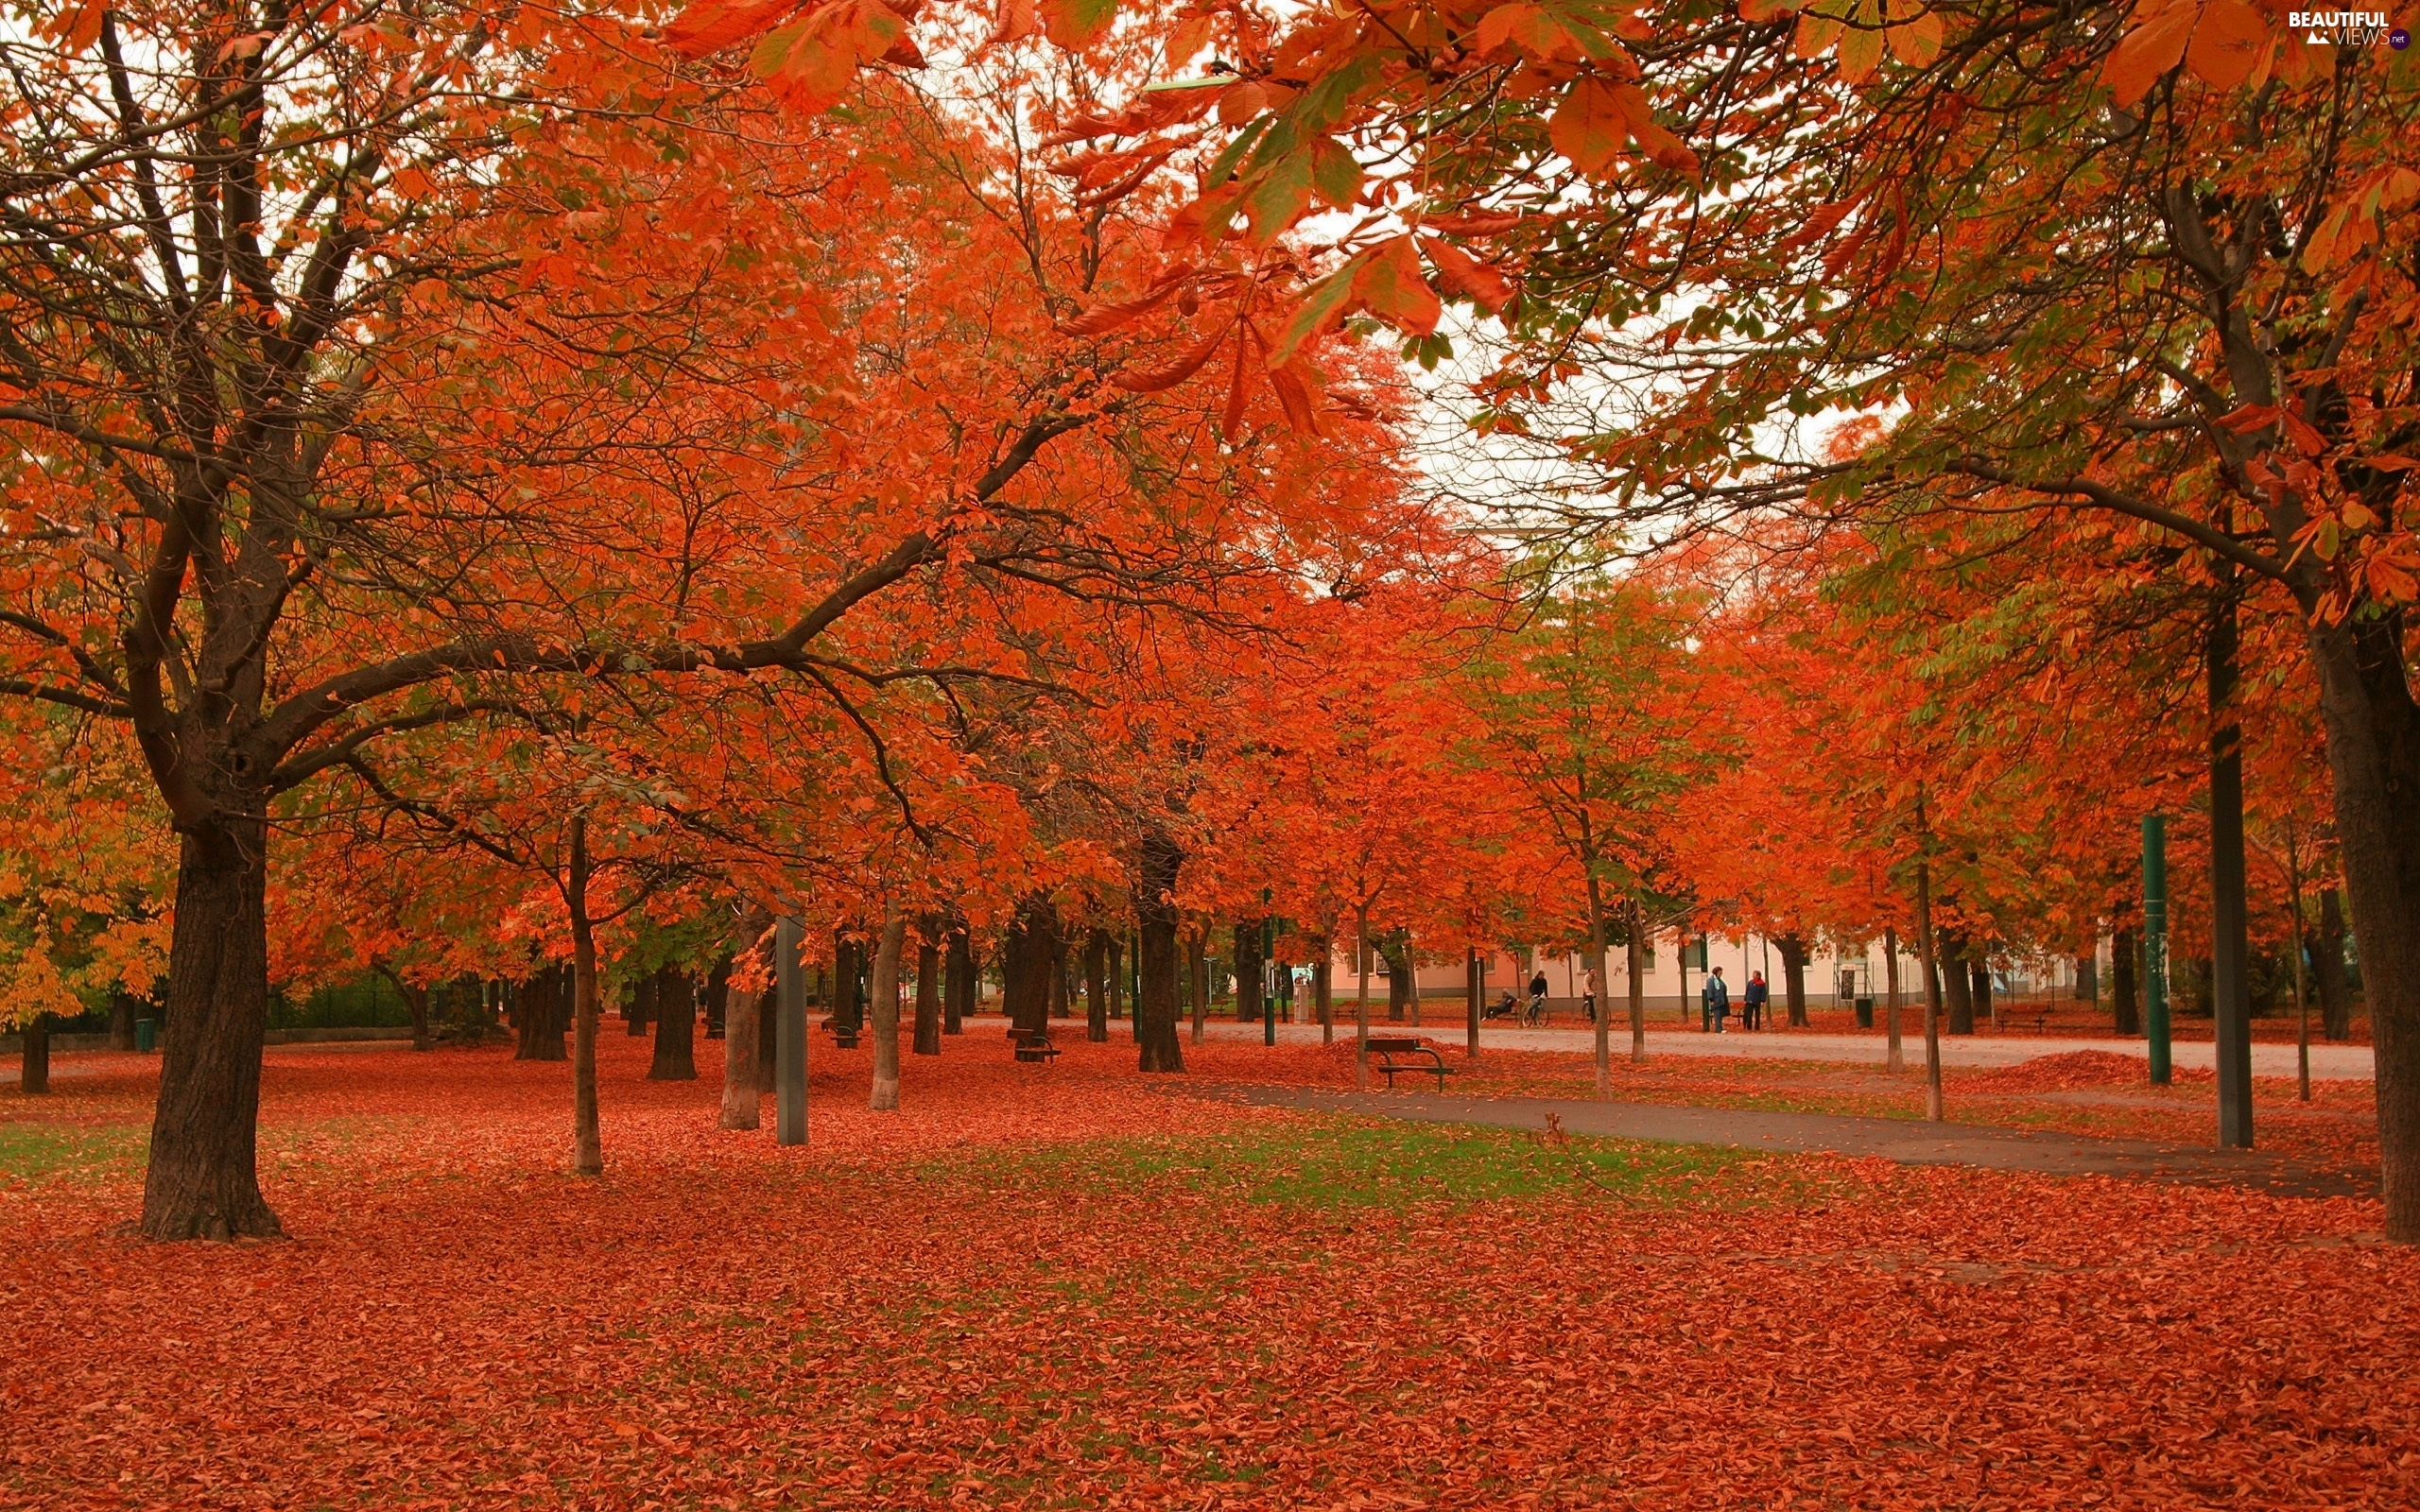 trees, viewes, autumn, Bench, Park